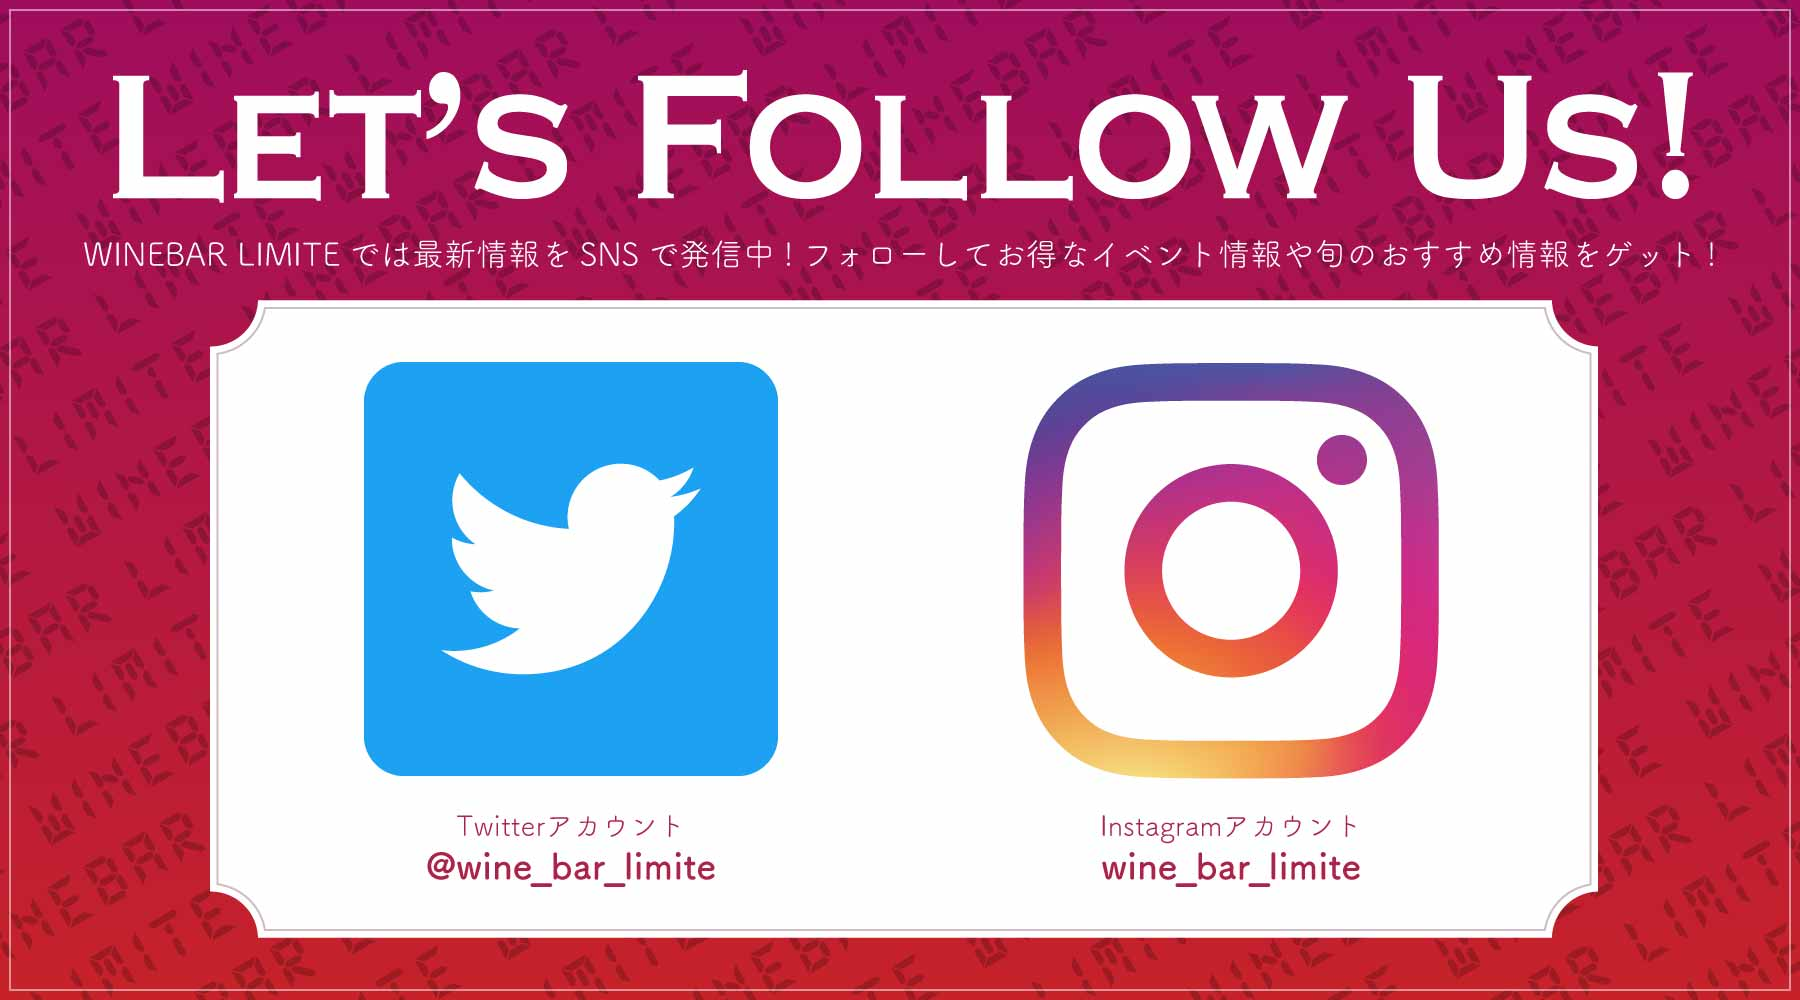 LET'S FOLLOW US!